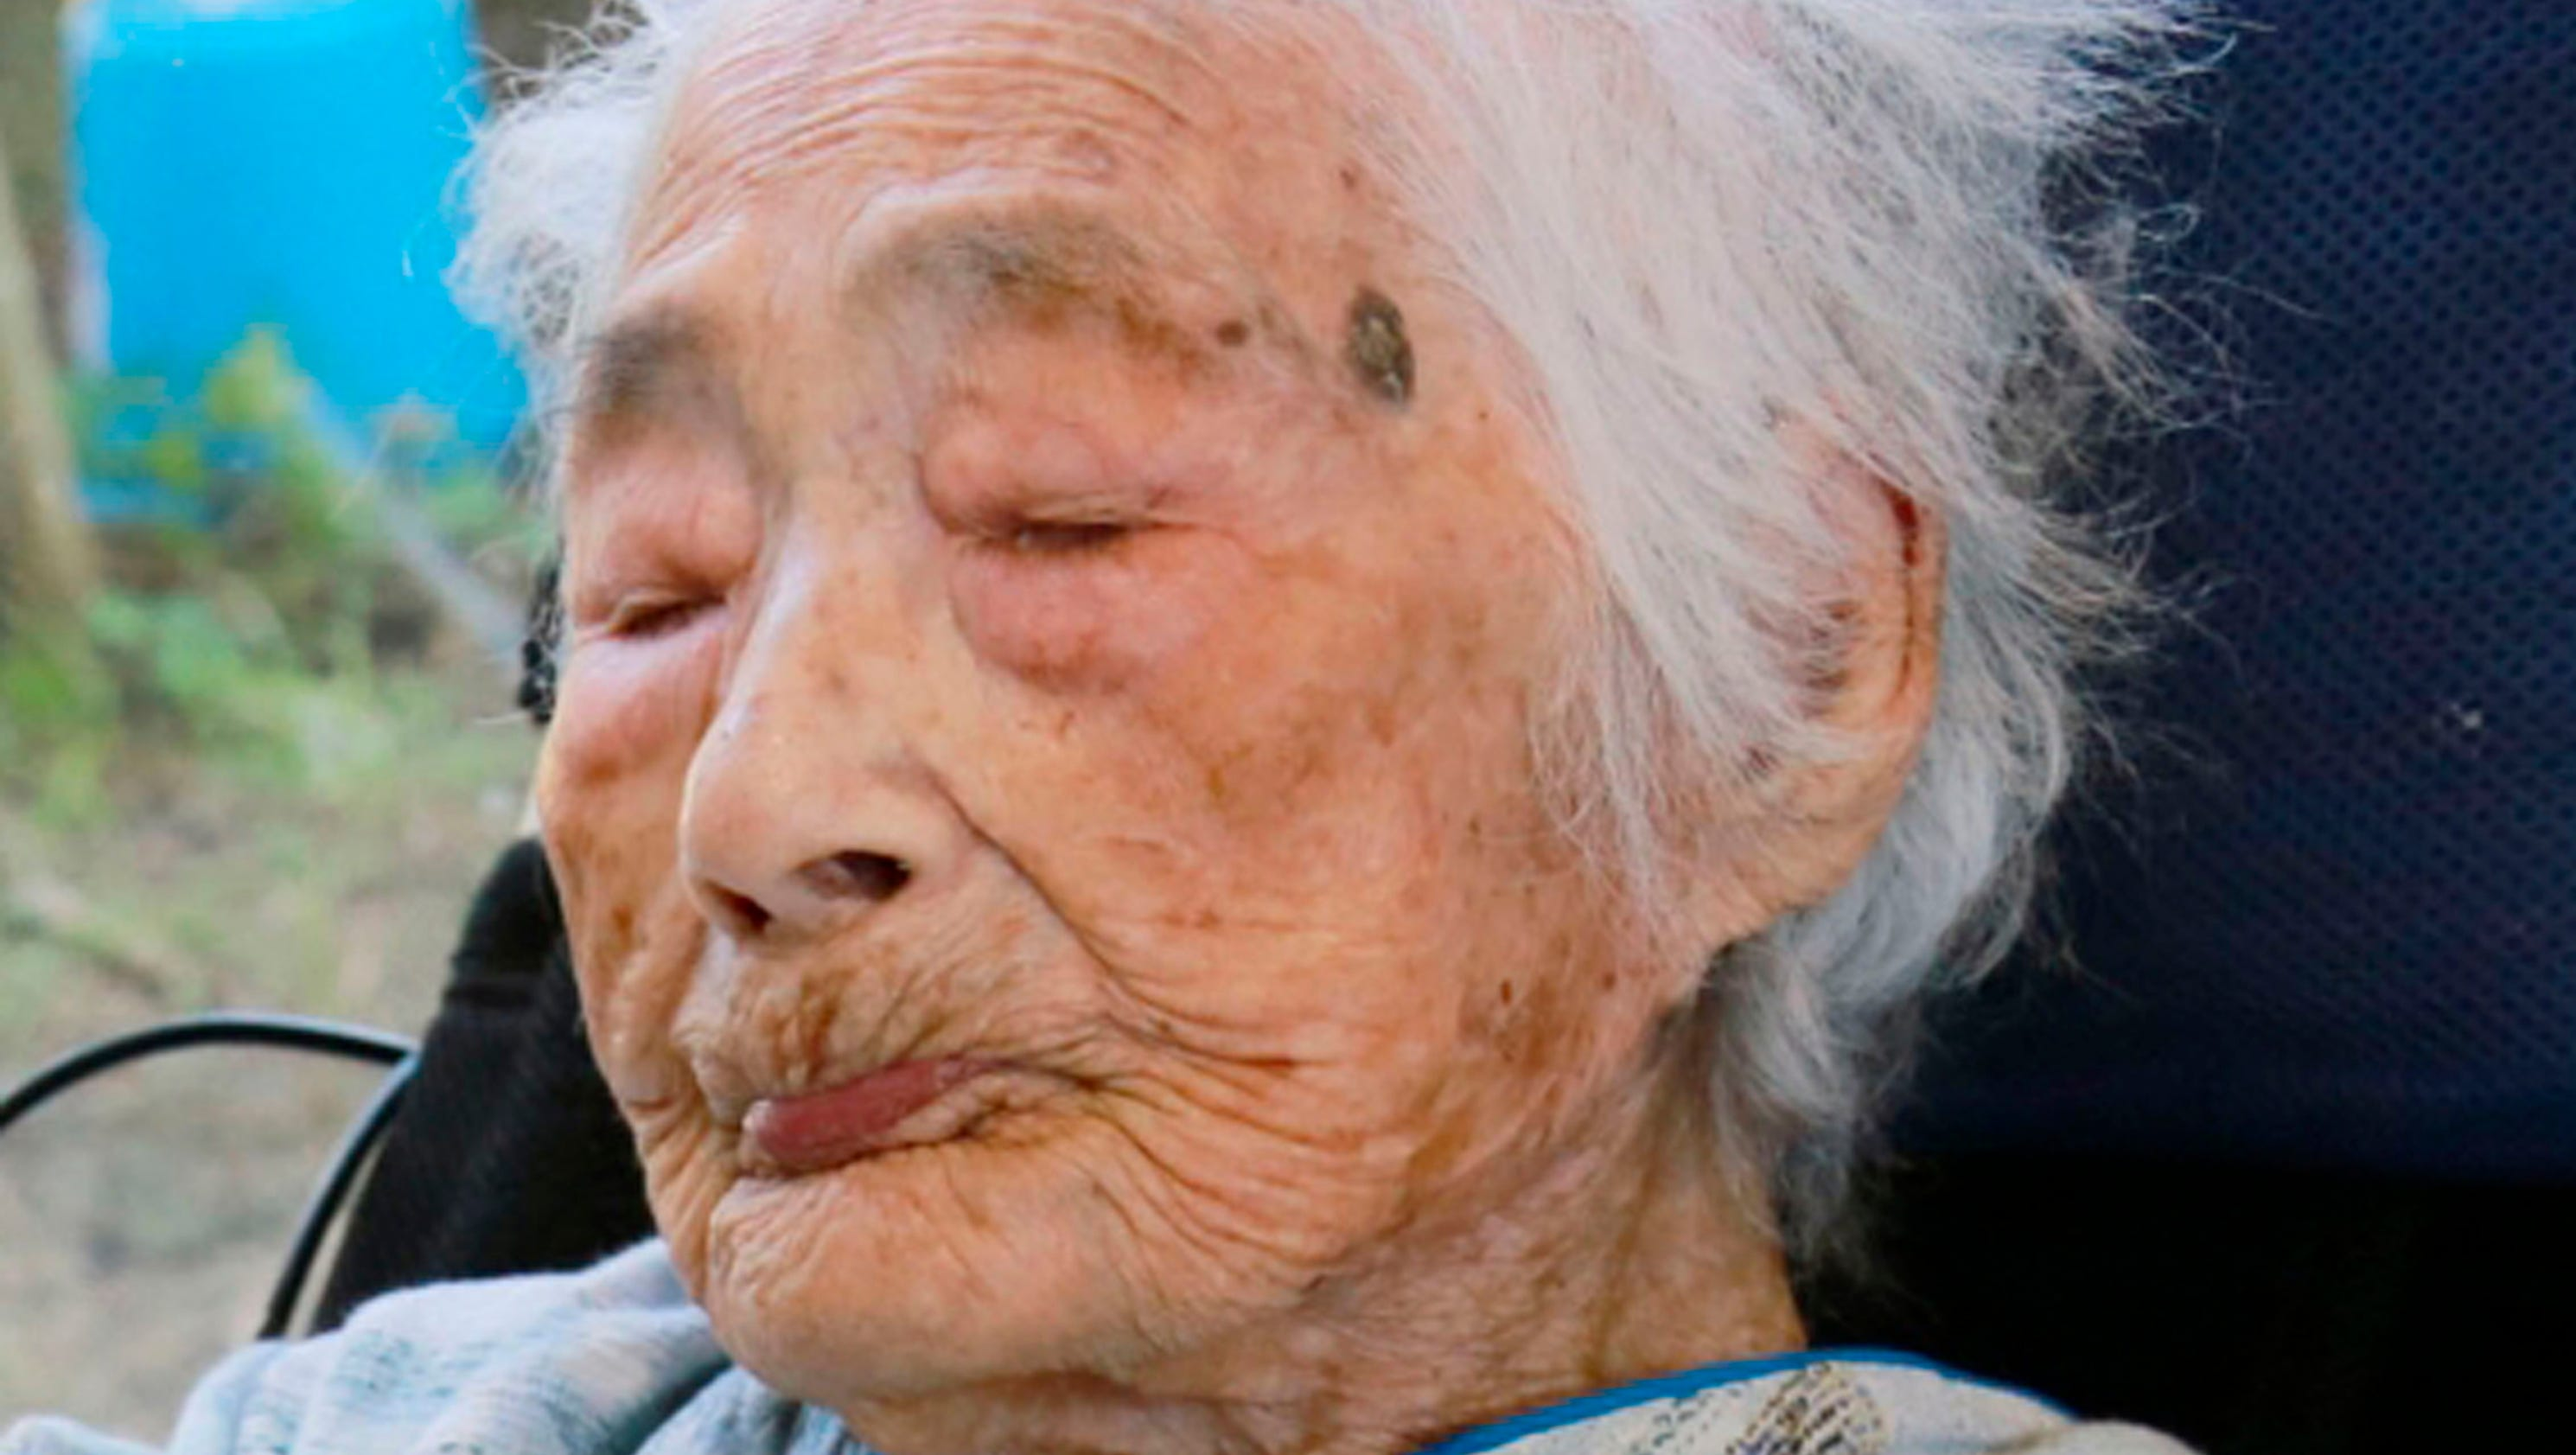 World's oldest person, last survivor of 19th century, dies in Japan at 117